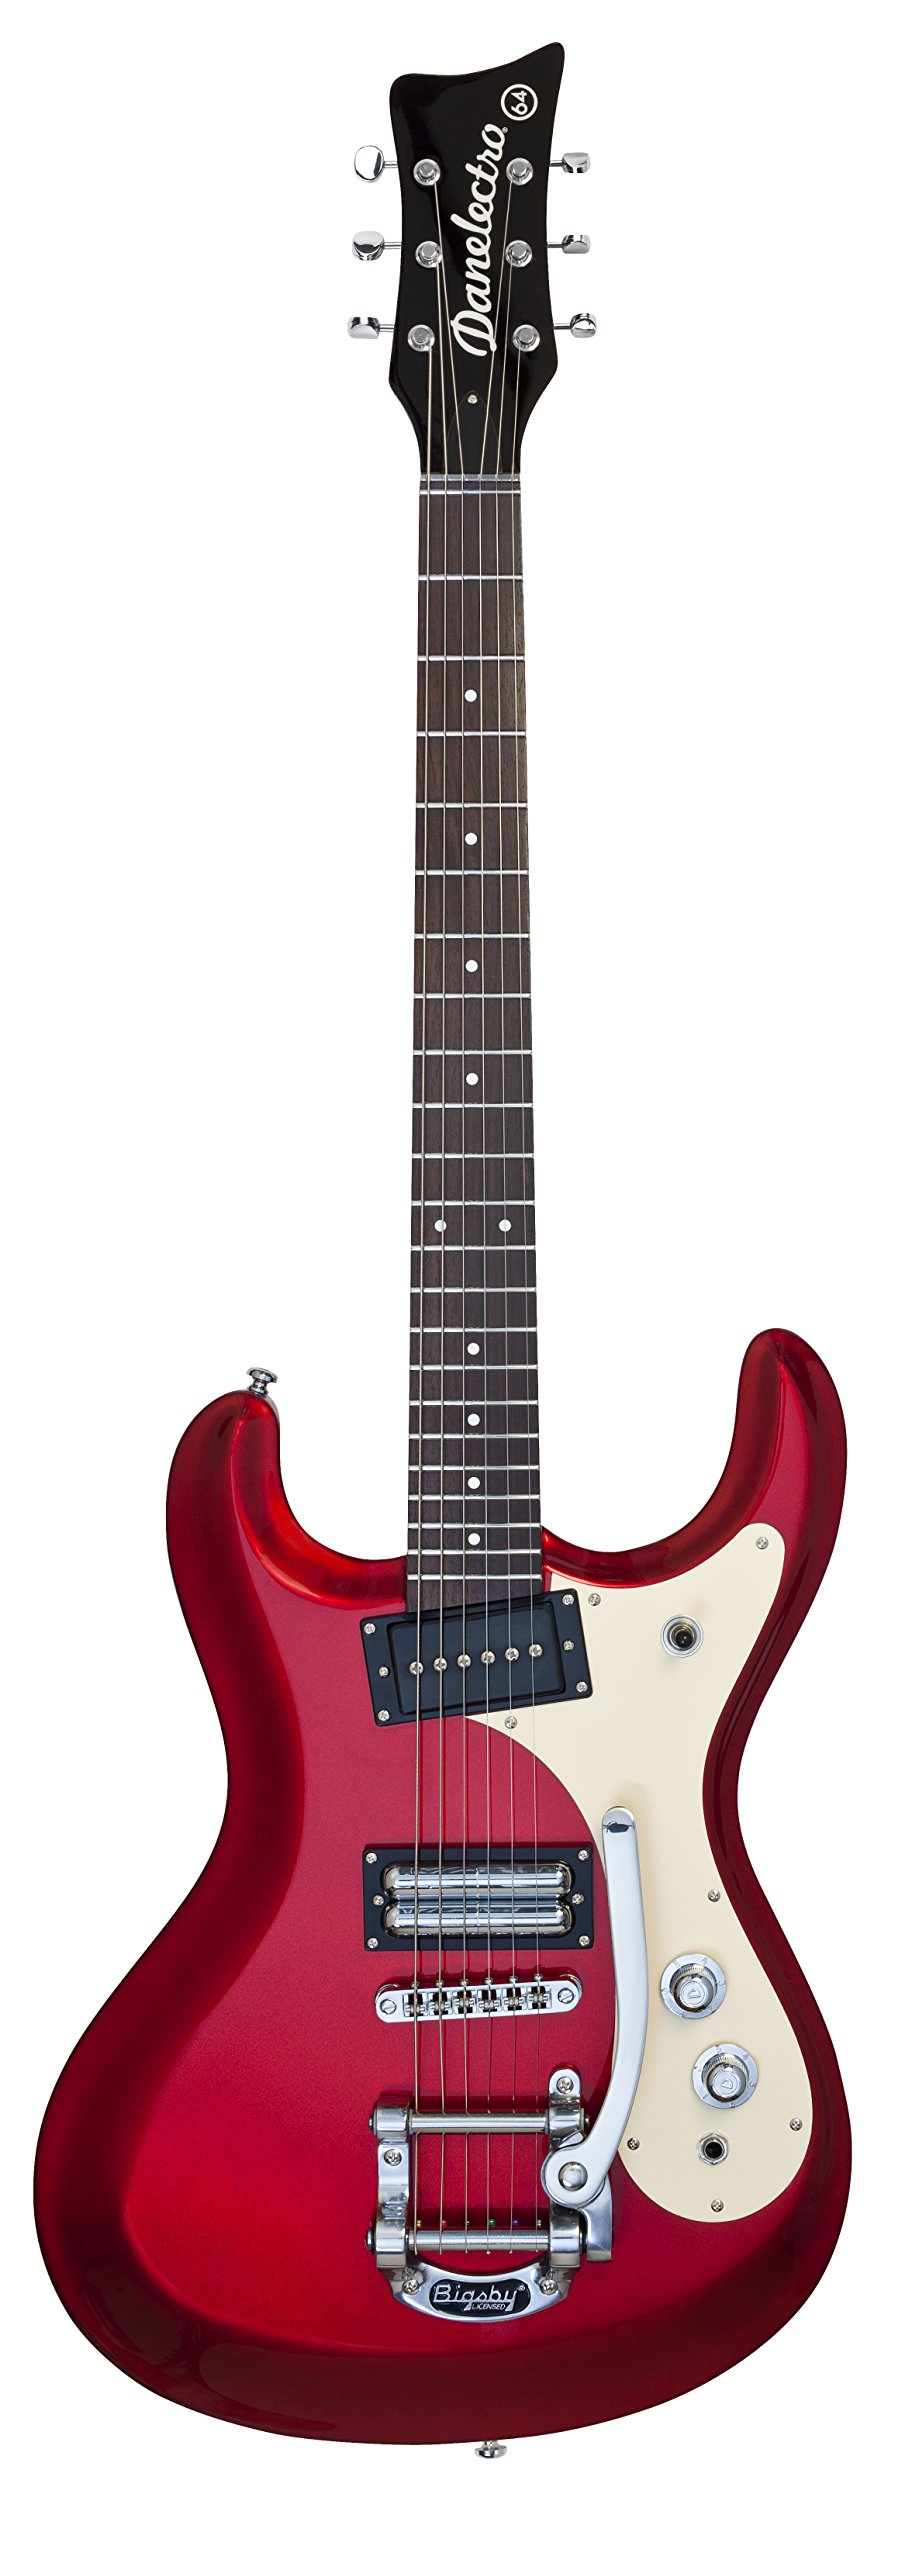 Cheap Danelectro The 1964 Electric Guitar Gloss Red Black Friday & Cyber Monday 2019